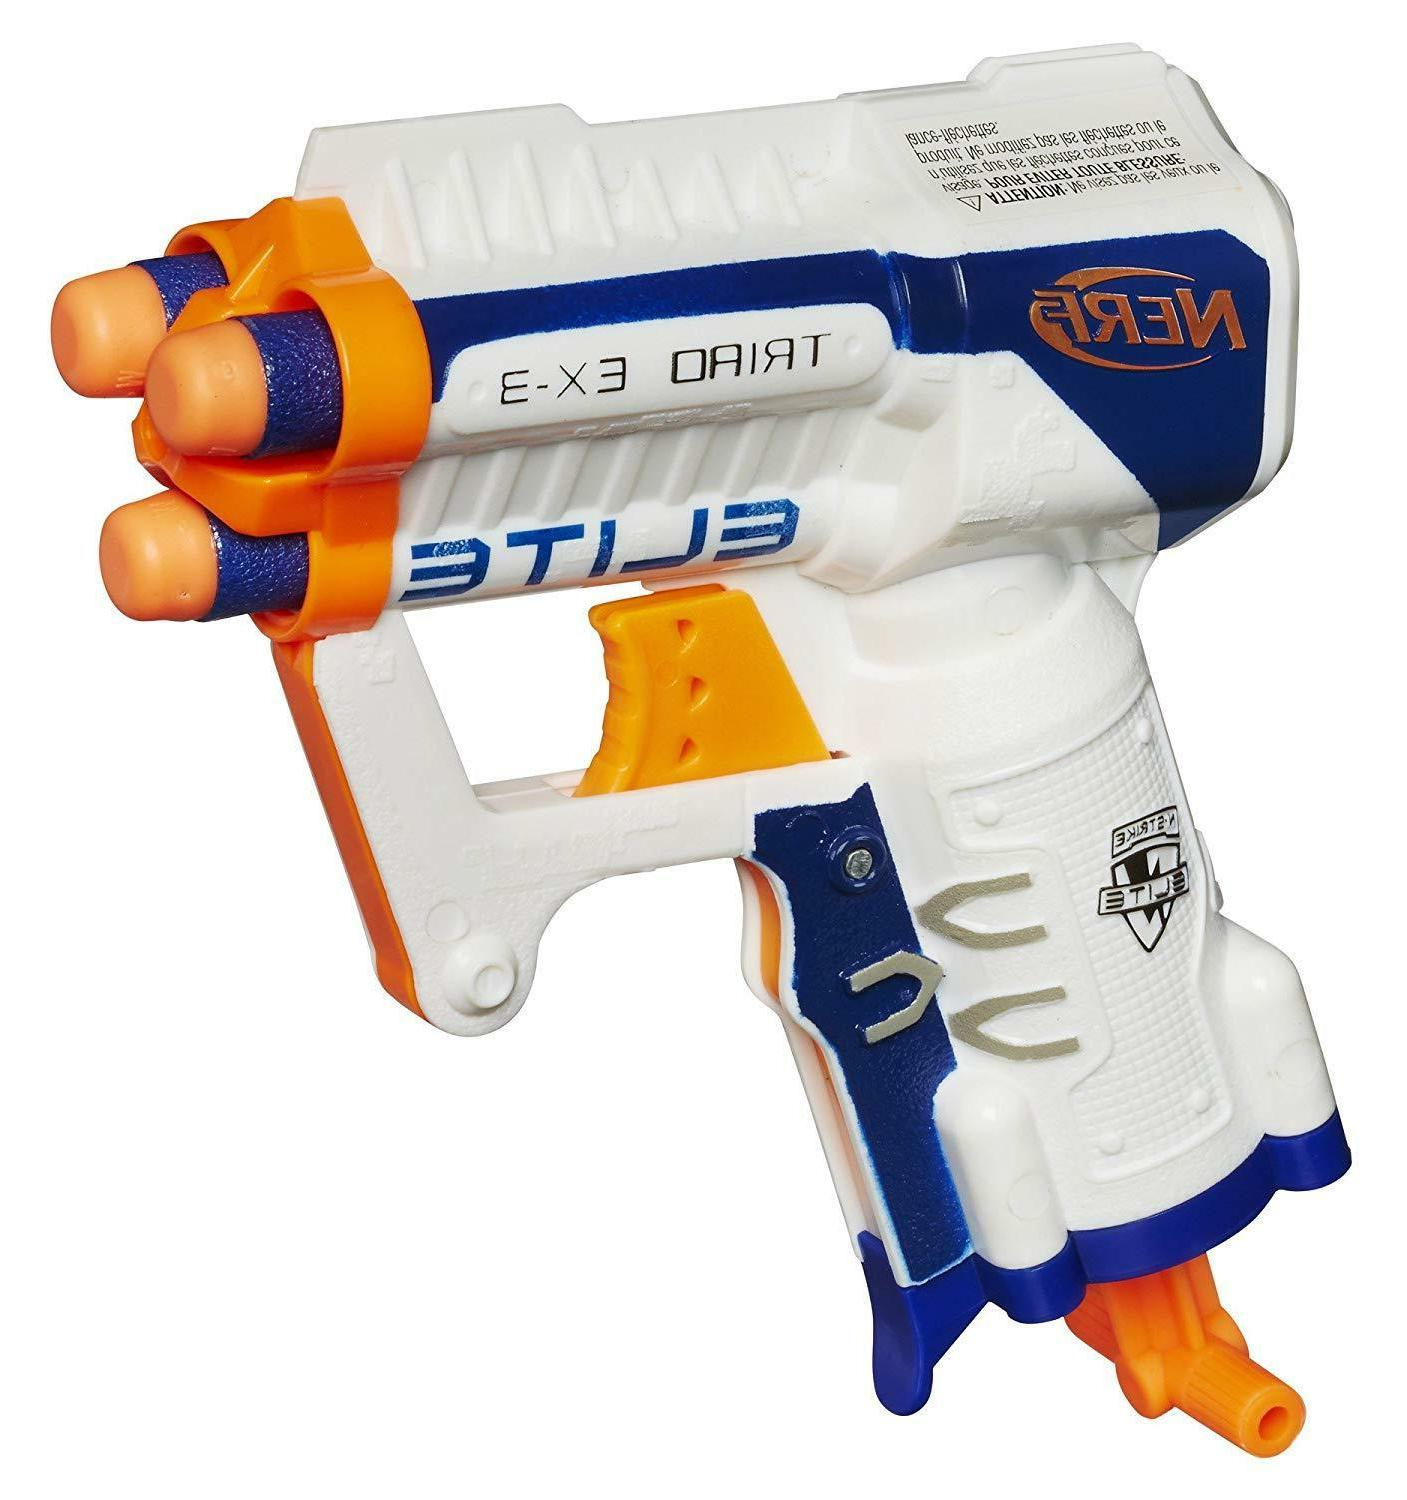 Nerf Blaster Darts Toy Strongarm Bullet Fire Refill